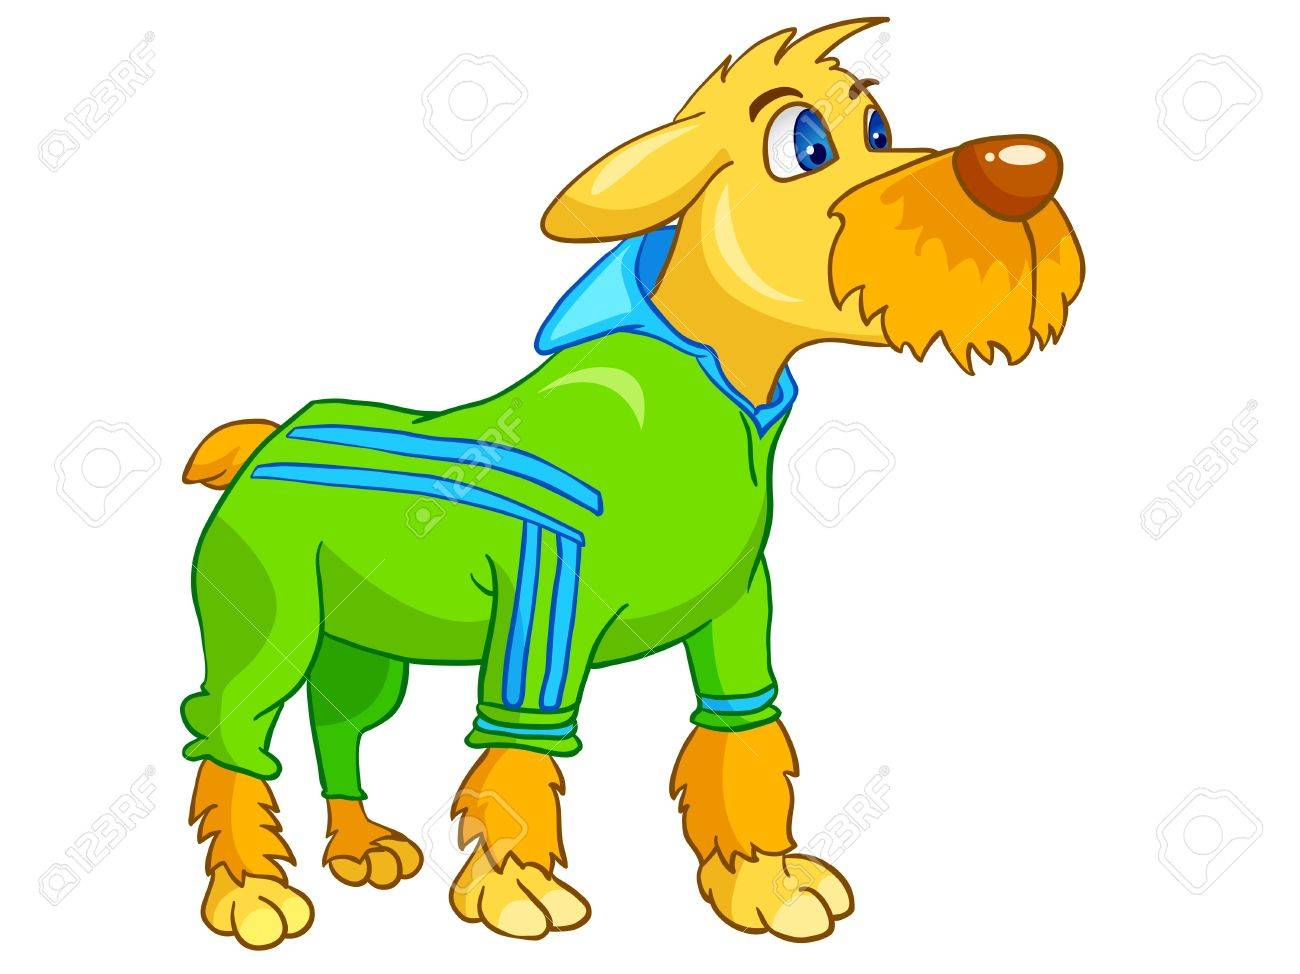 Cartoon Character Dog Stock Vector - 11235103